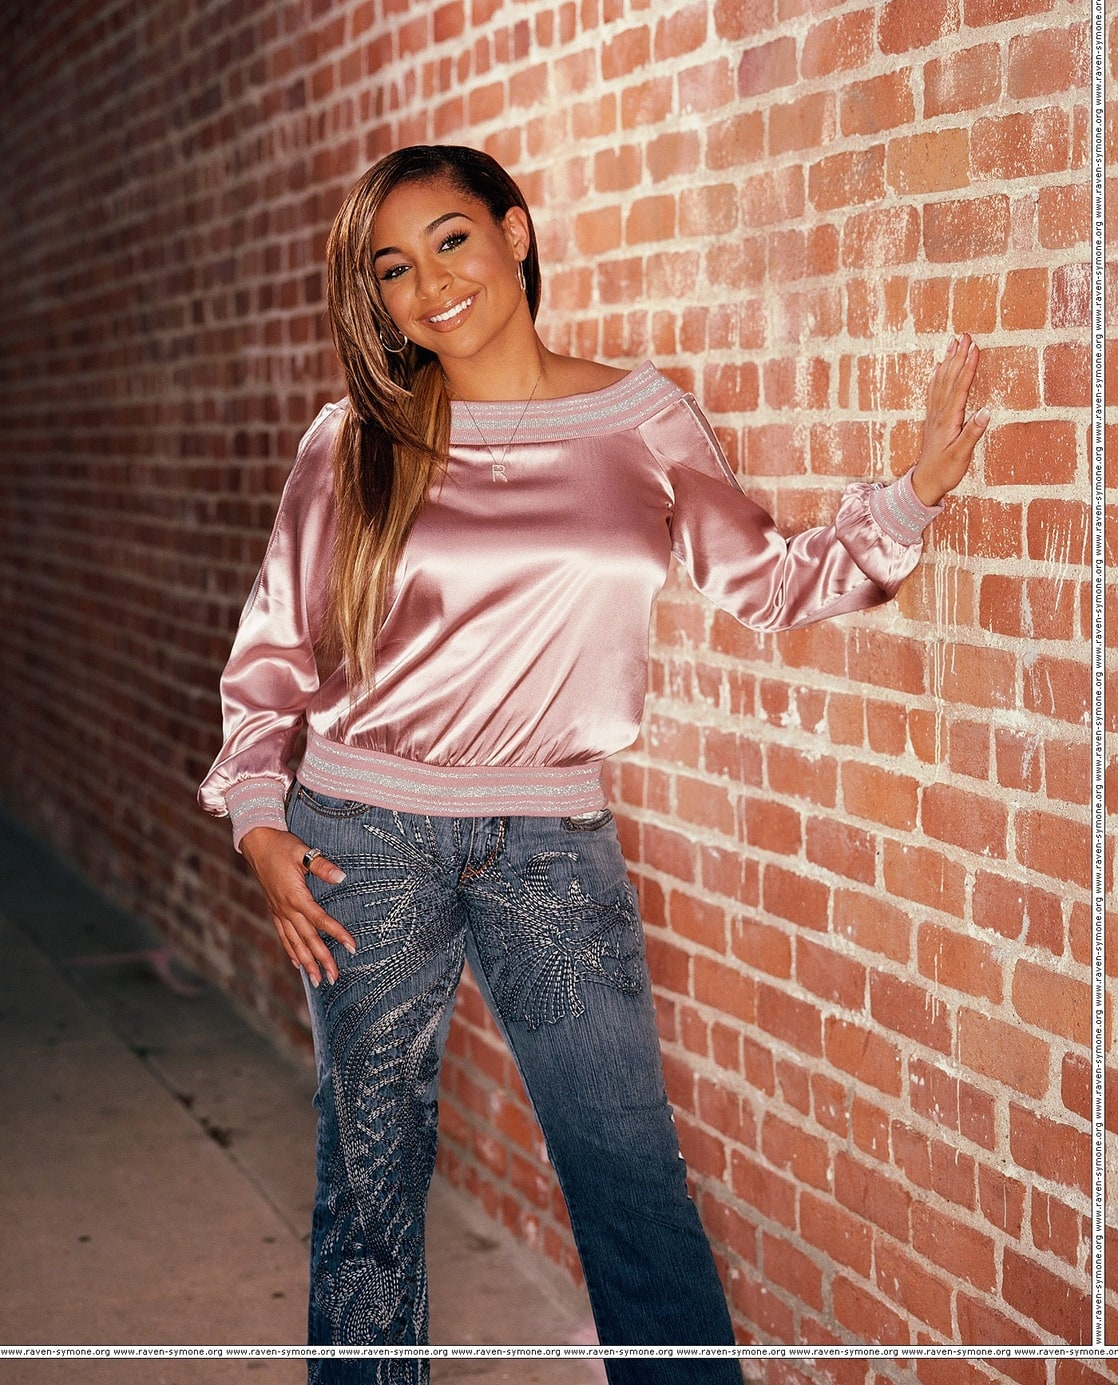 Raven-Symone Exiting The View as Disney Eyes That s So Raven Raven symone fashion games